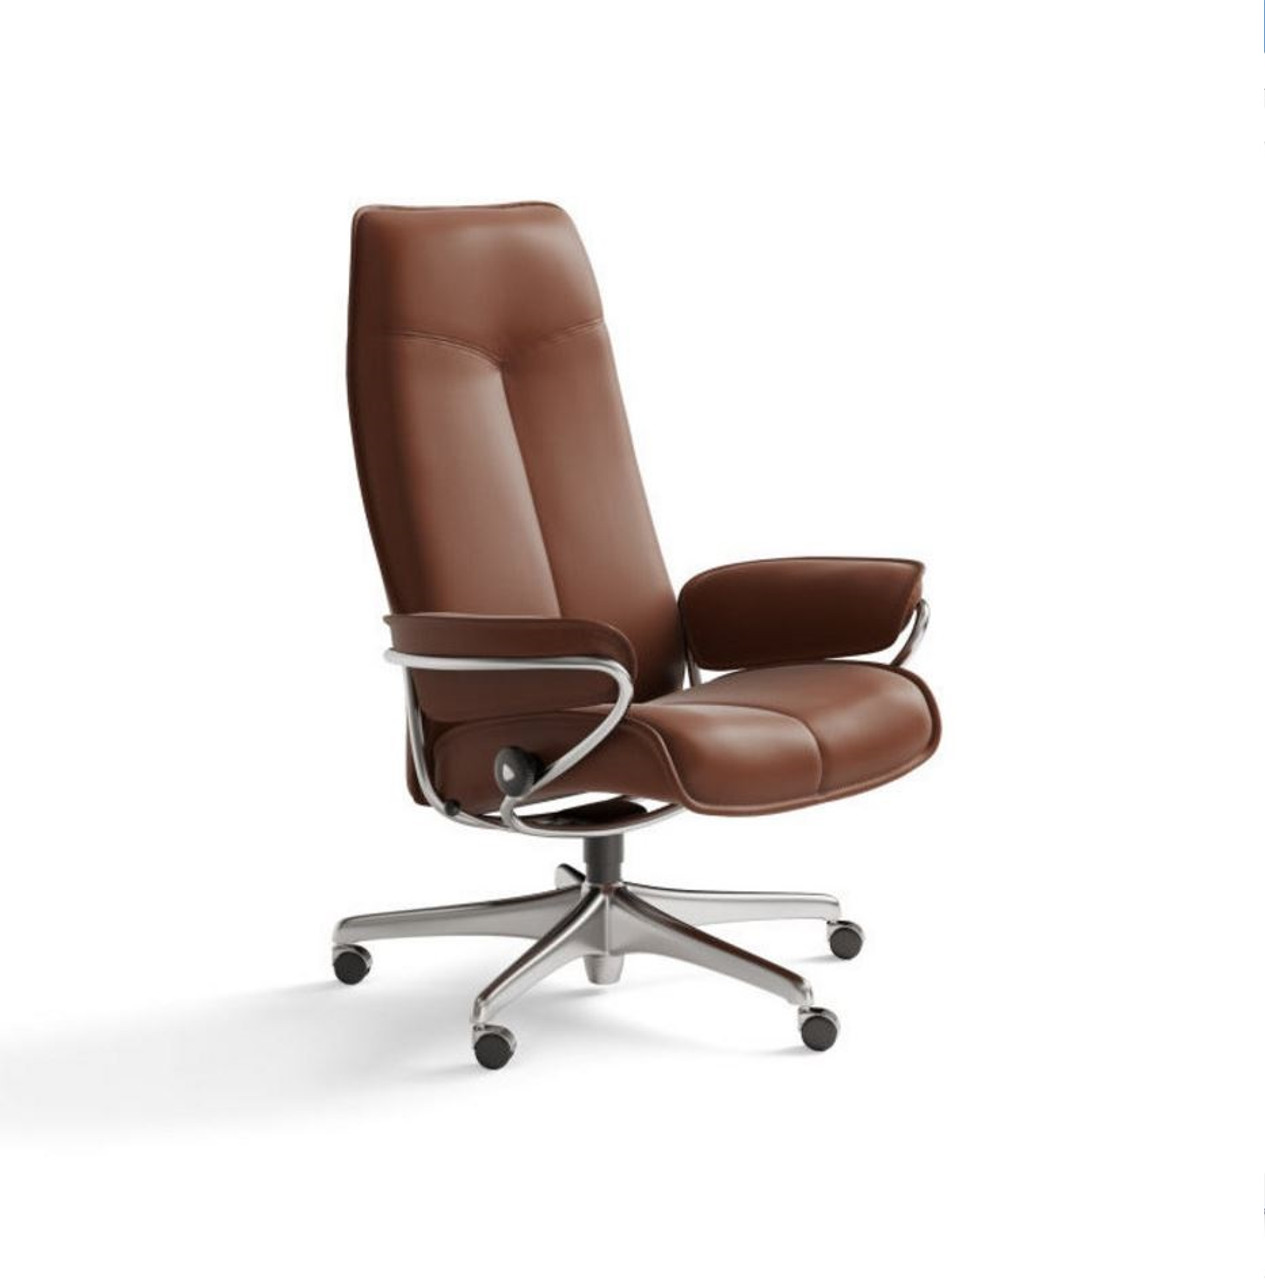 office chair high back rattan cushions covers stressless city option copper paloma leather ships stress free at unwind